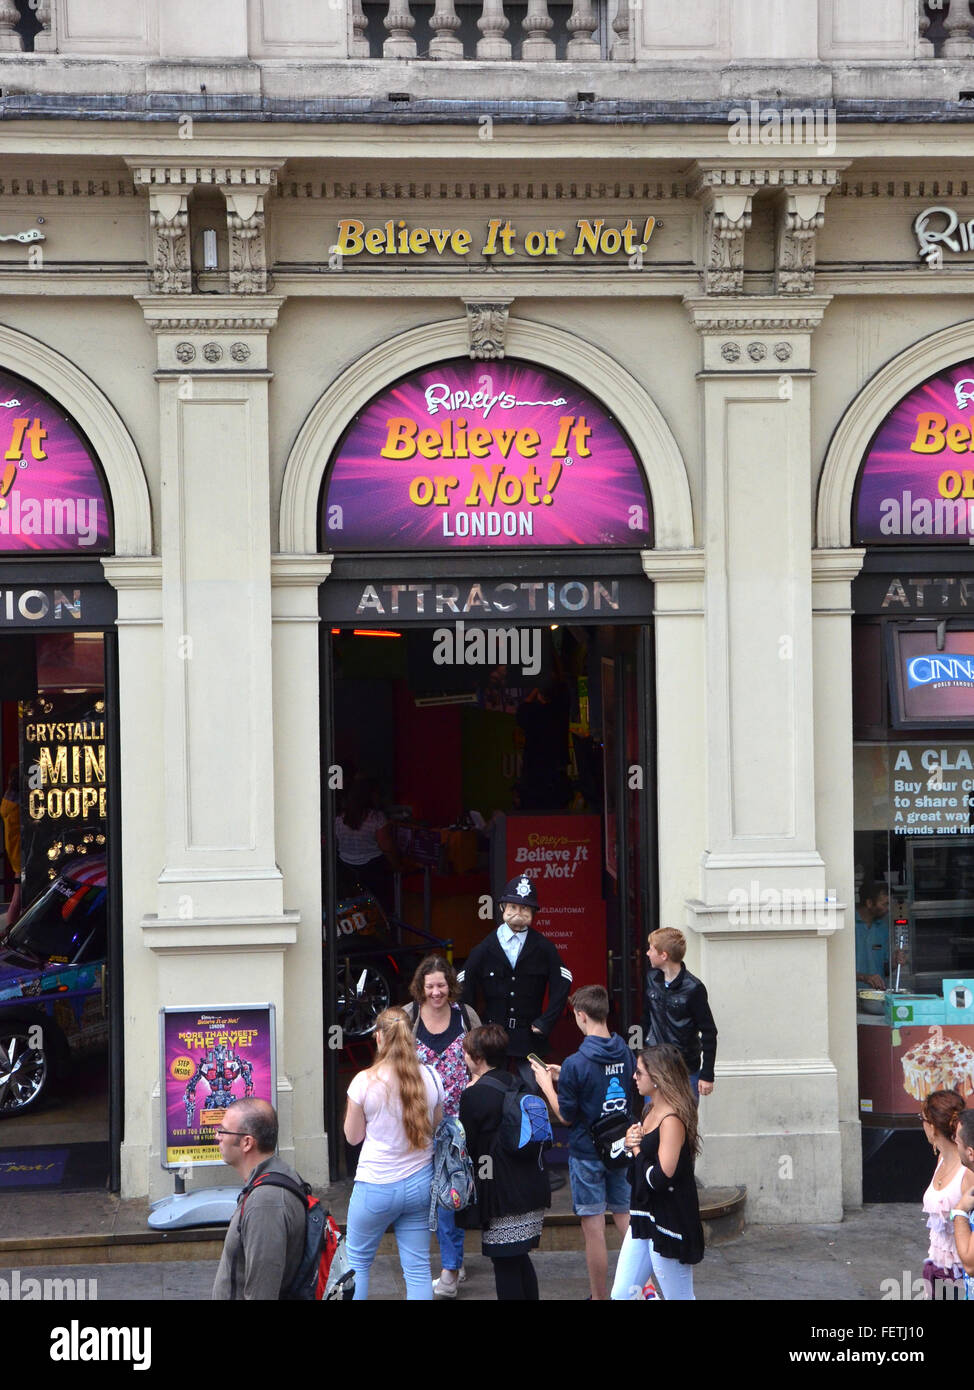 LONDON - AUGUST 6: Ripley's Believe Ir or Not! London, shown on August 6, 2015, includes over 700 artifacts. - Stock Image